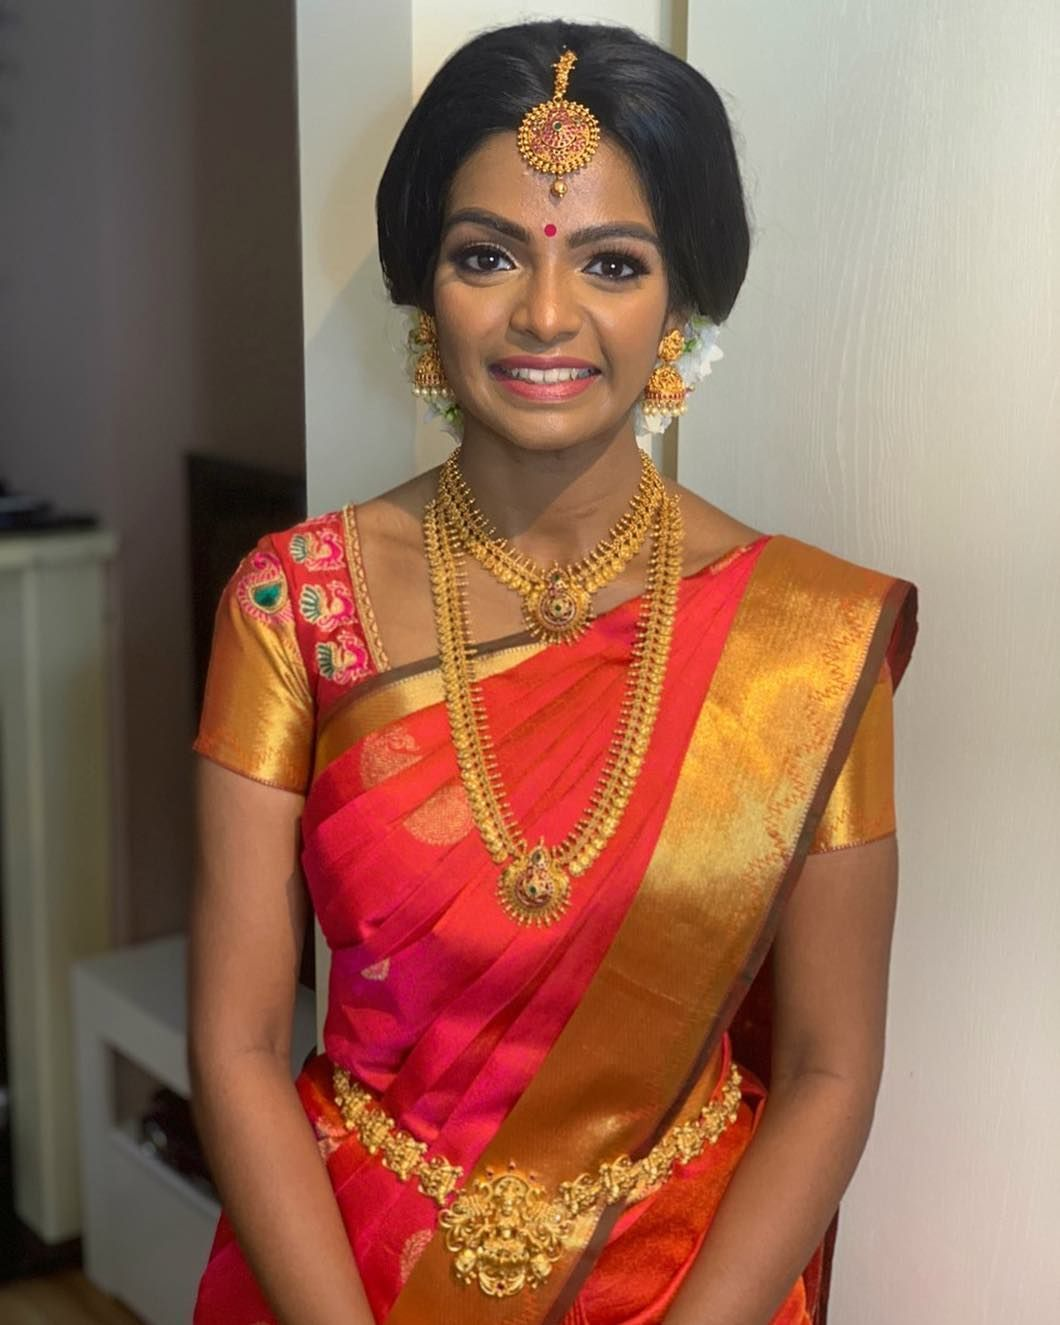 Tamil Wedding Hairstyles For Short Hair Lace The Gorgeous Arthi 039 S Hindu Wedding Look Short Wedding Hair Tamil Wedding Indian Bridal Hairstyles